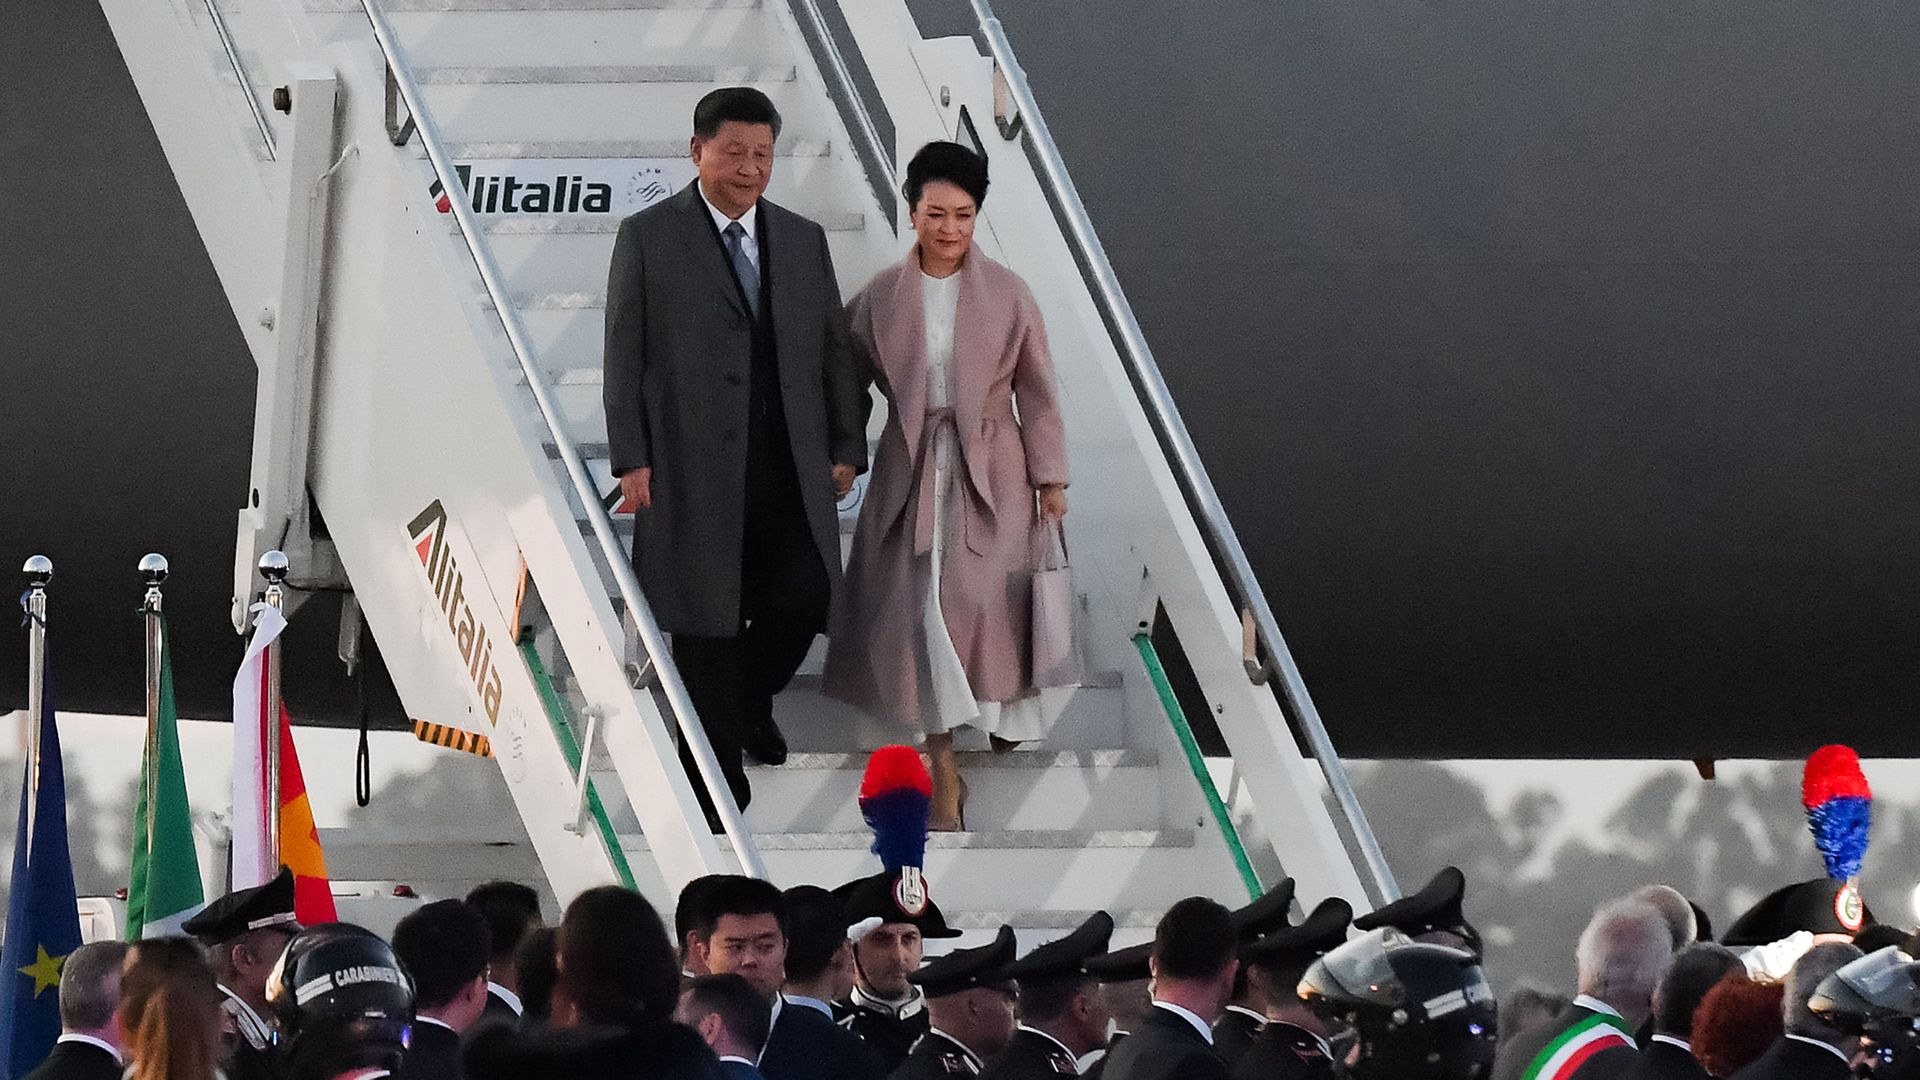 Xi Jinping and his wife deboarding their flight in Italy